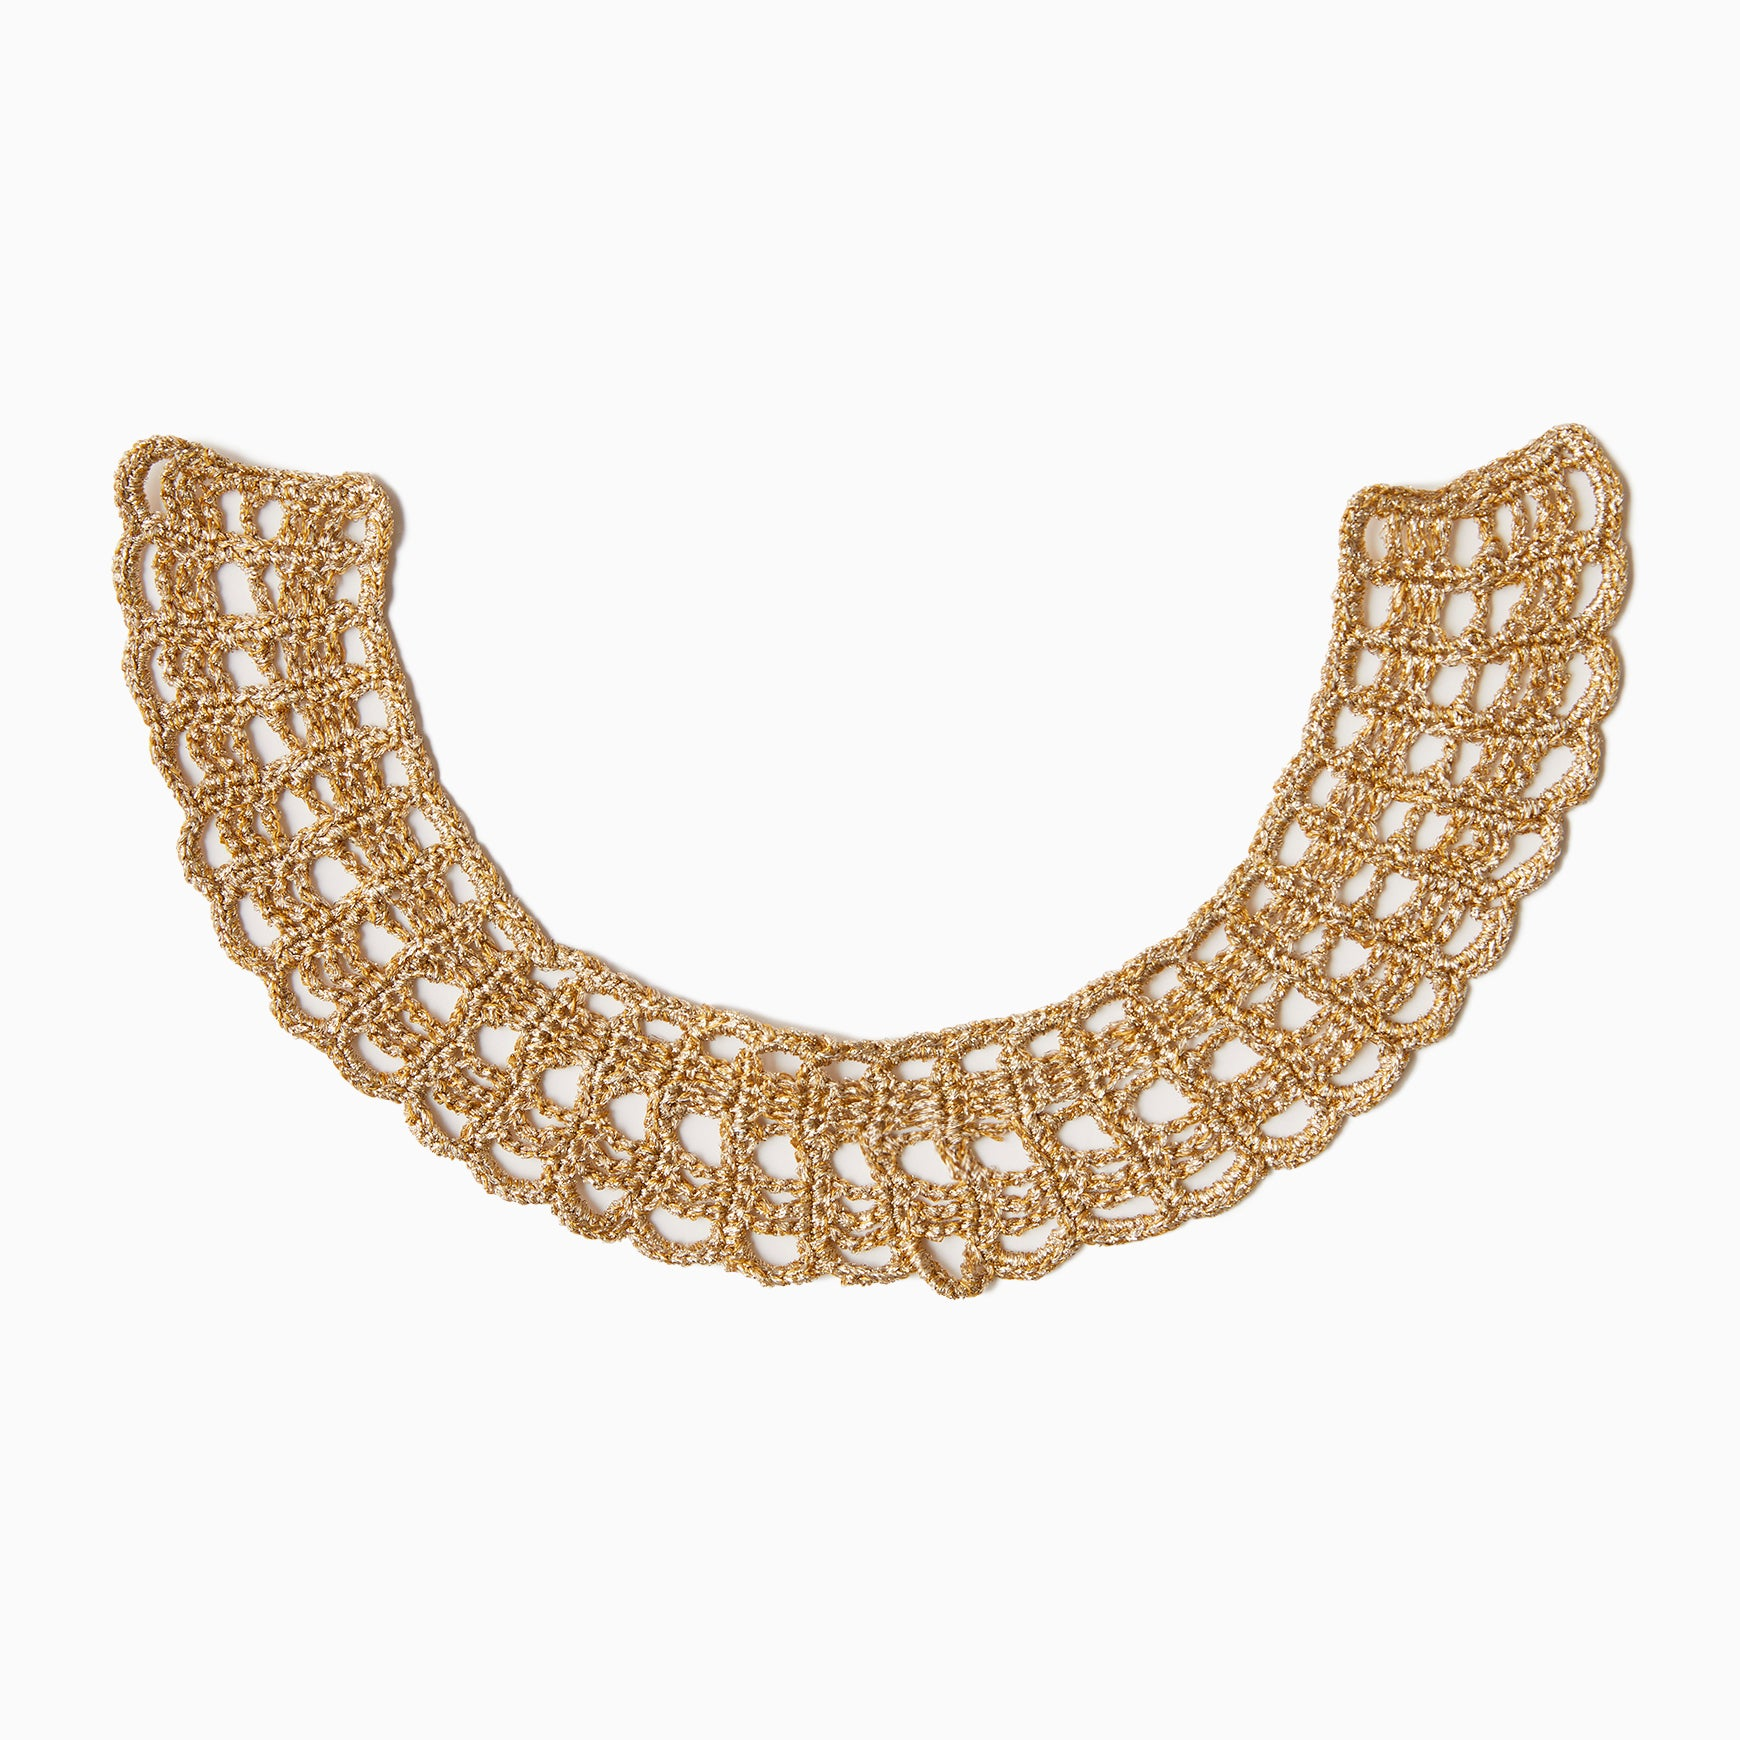 TYPE-1 ATLAS Flat Collar Part Hand Knit (Gold)